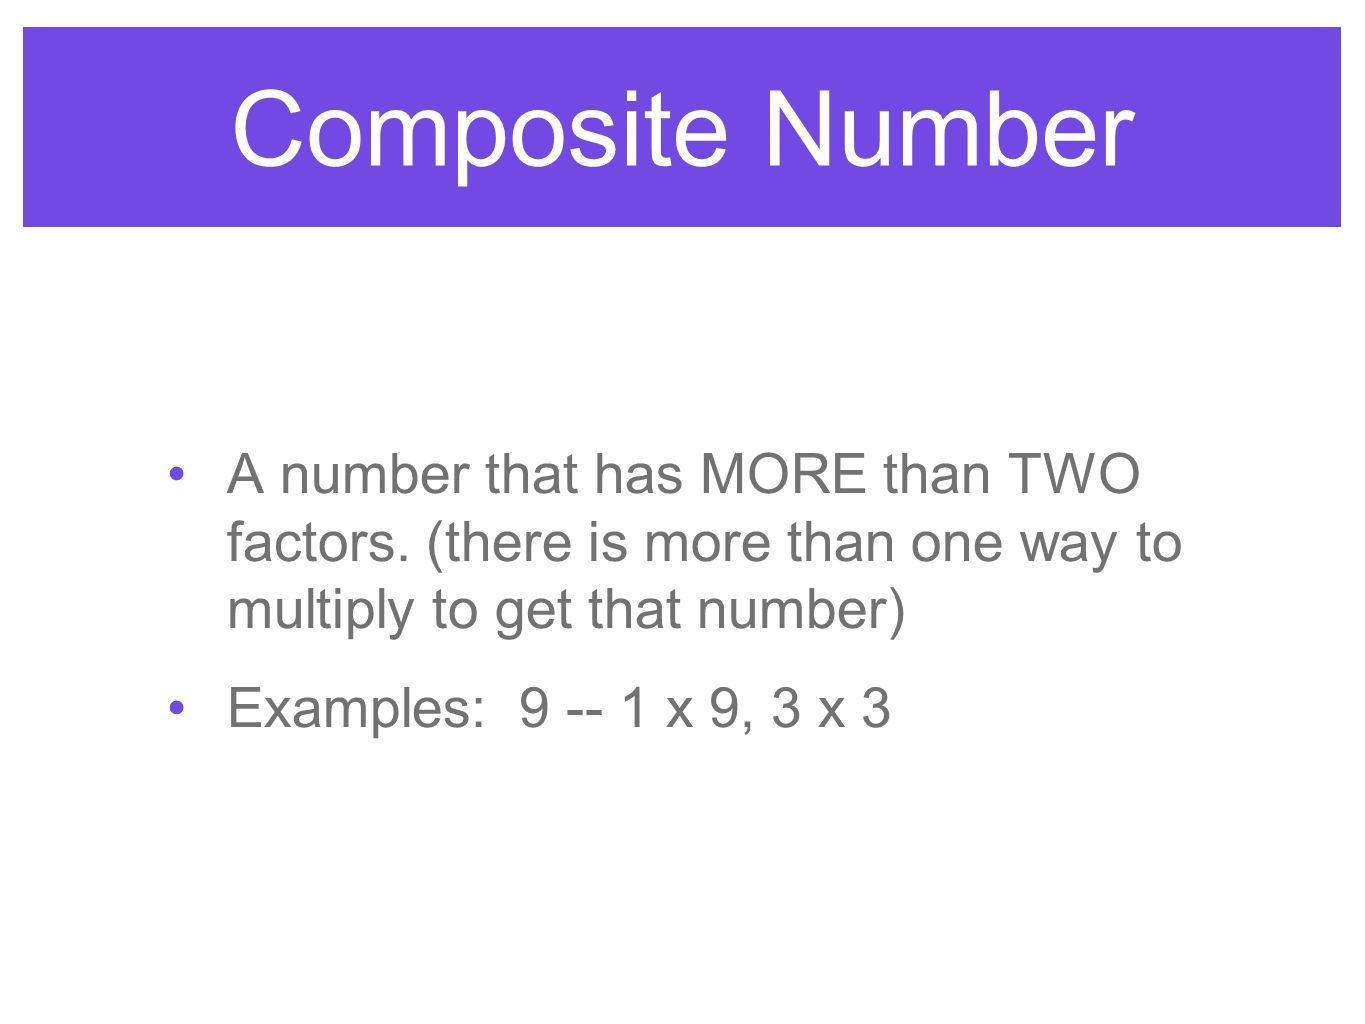 Composite Number A number that has MORE than TWO factors. (there is more than one way to multiply to get that number)